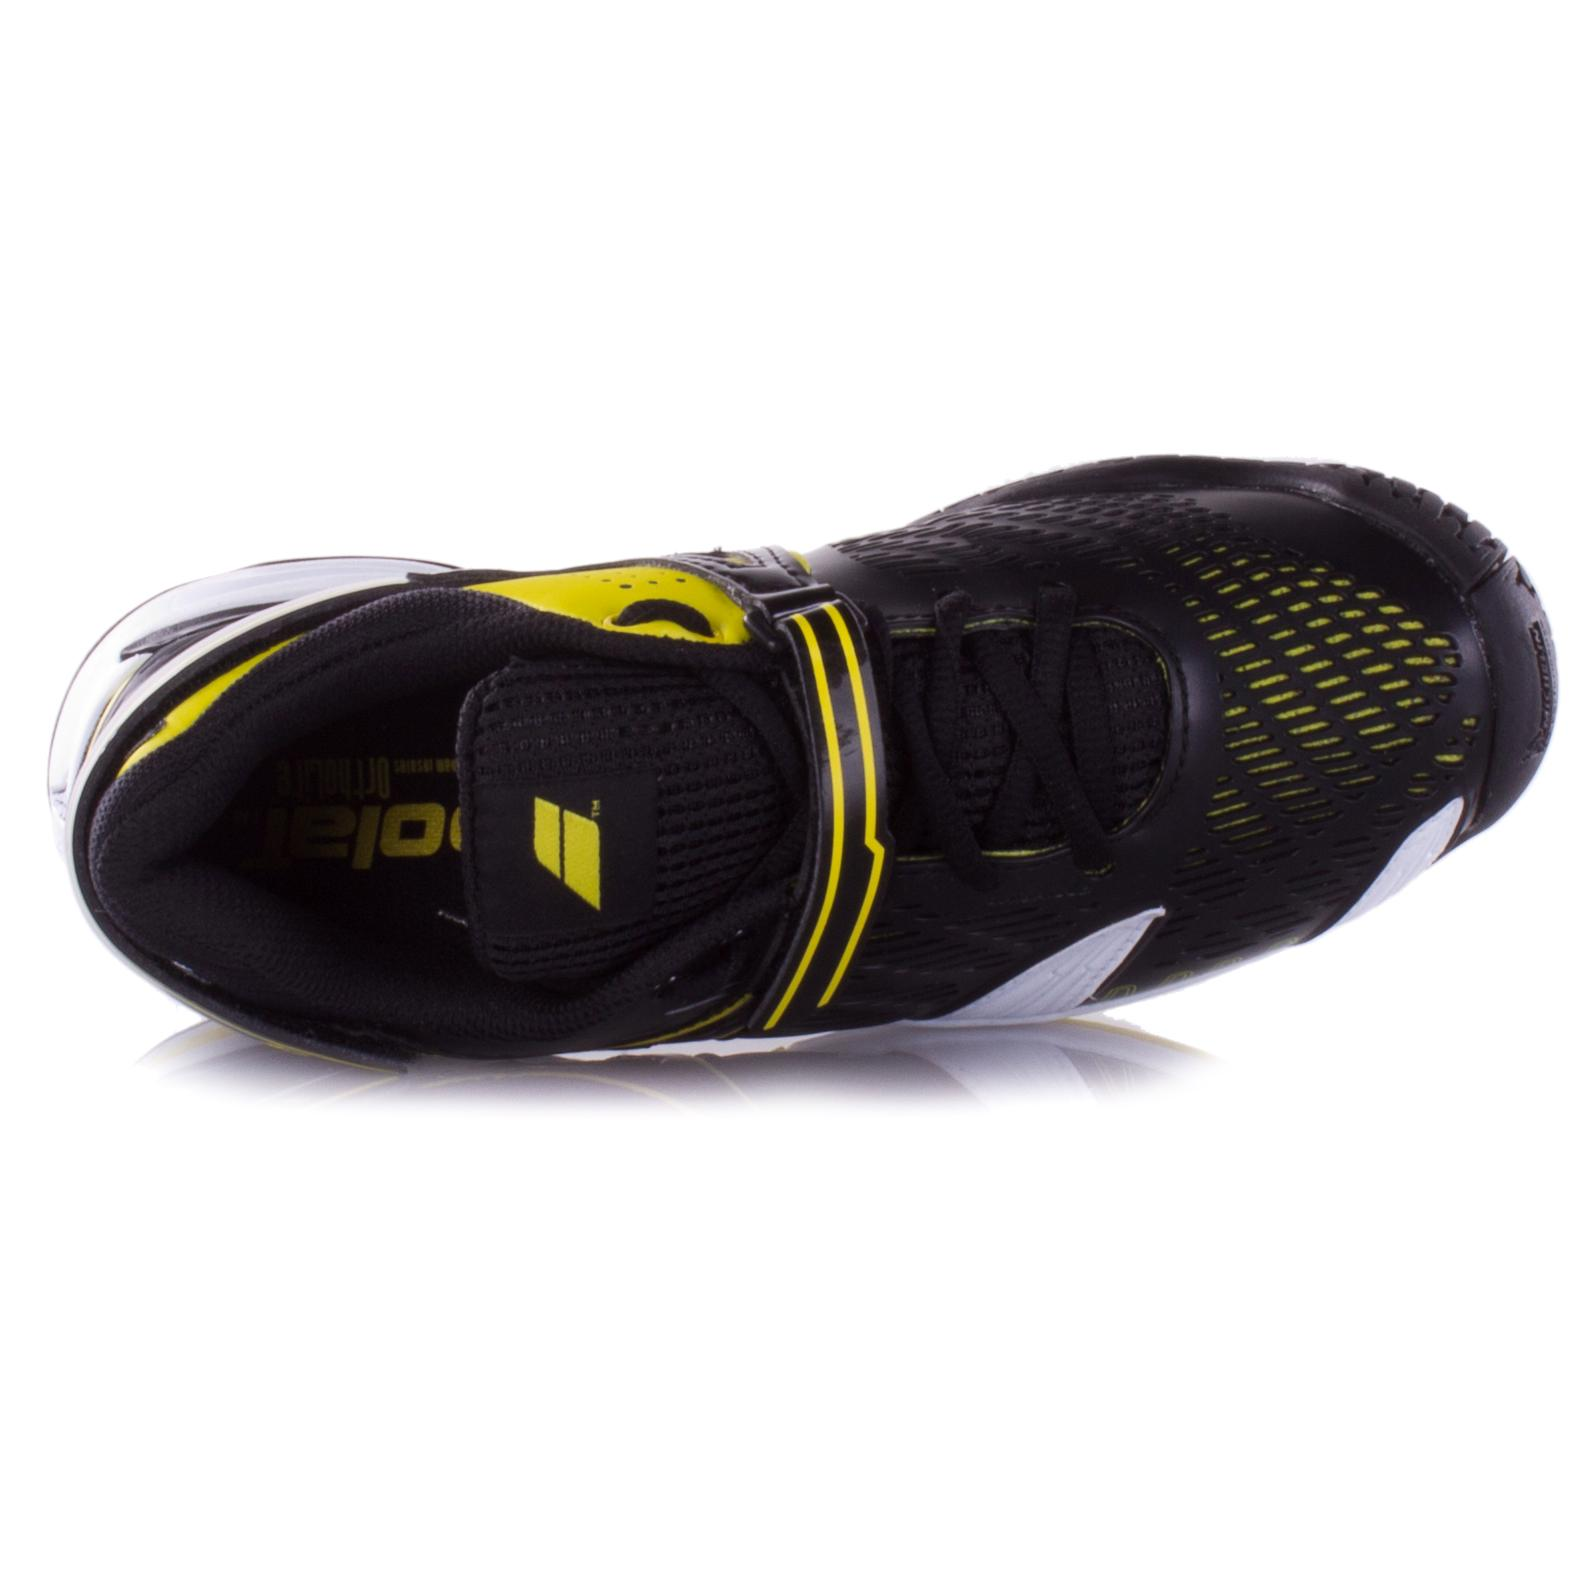 Babolat Propulse Aero Junior Tennis Shoe